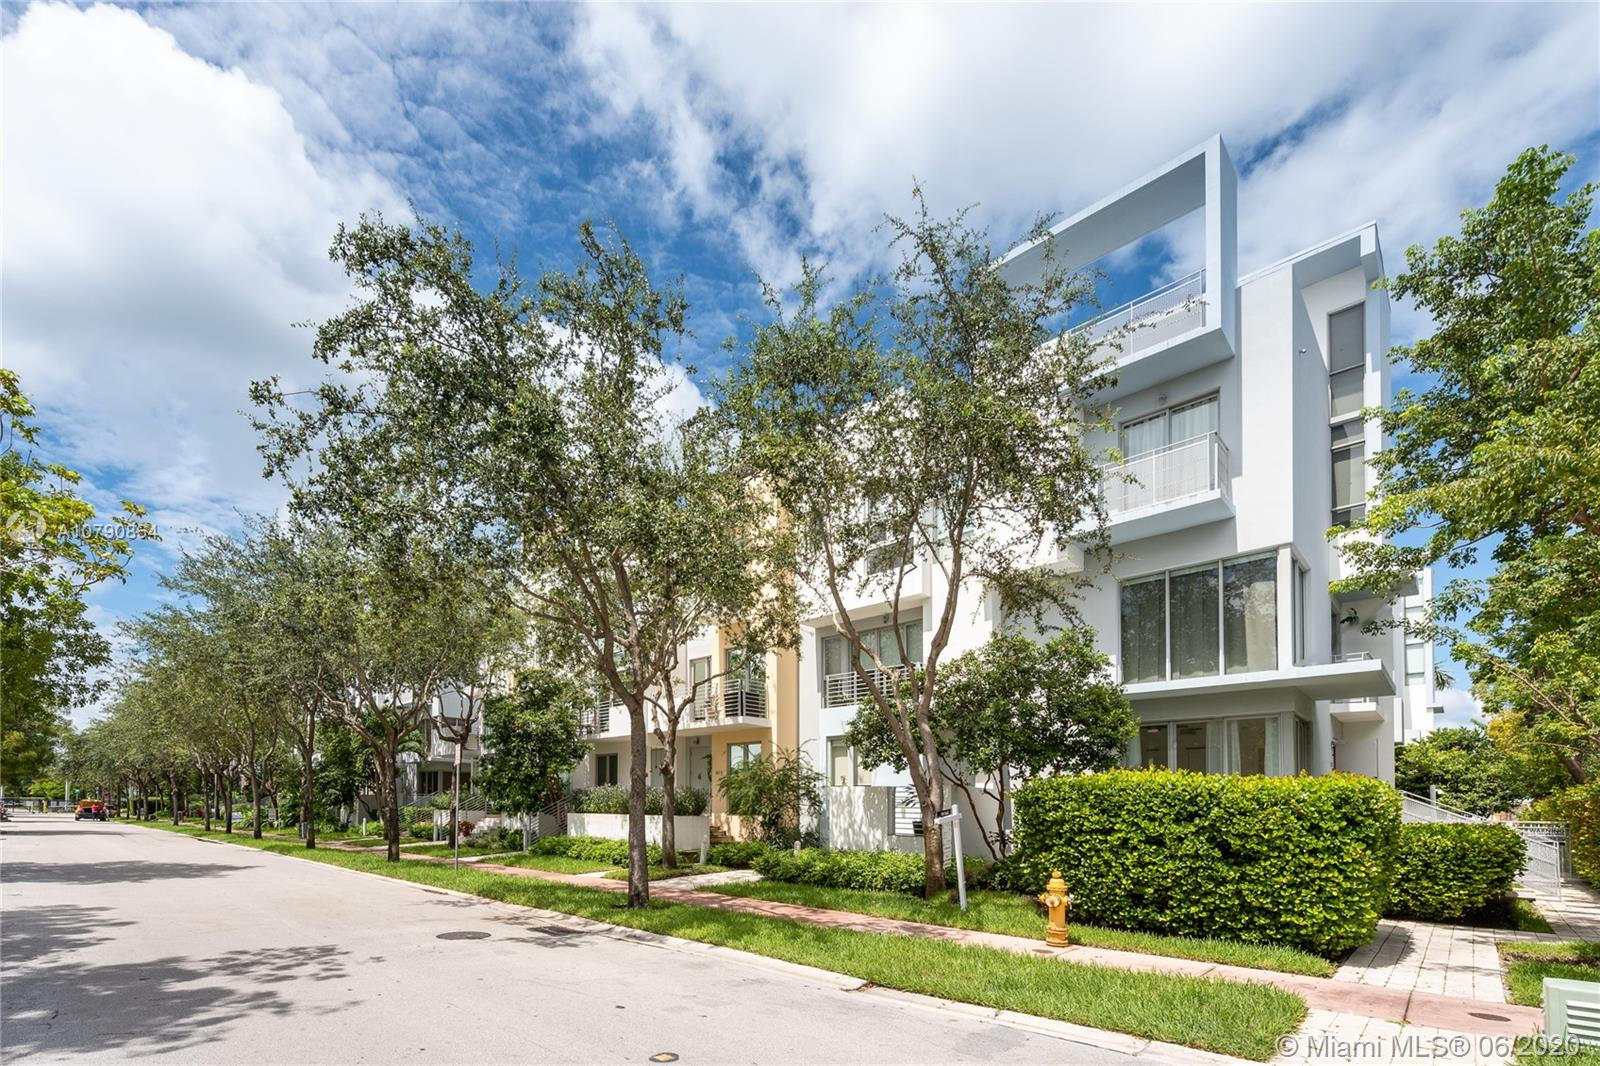 163 N Shore Dr #163-1 For Sale A10790864, FL